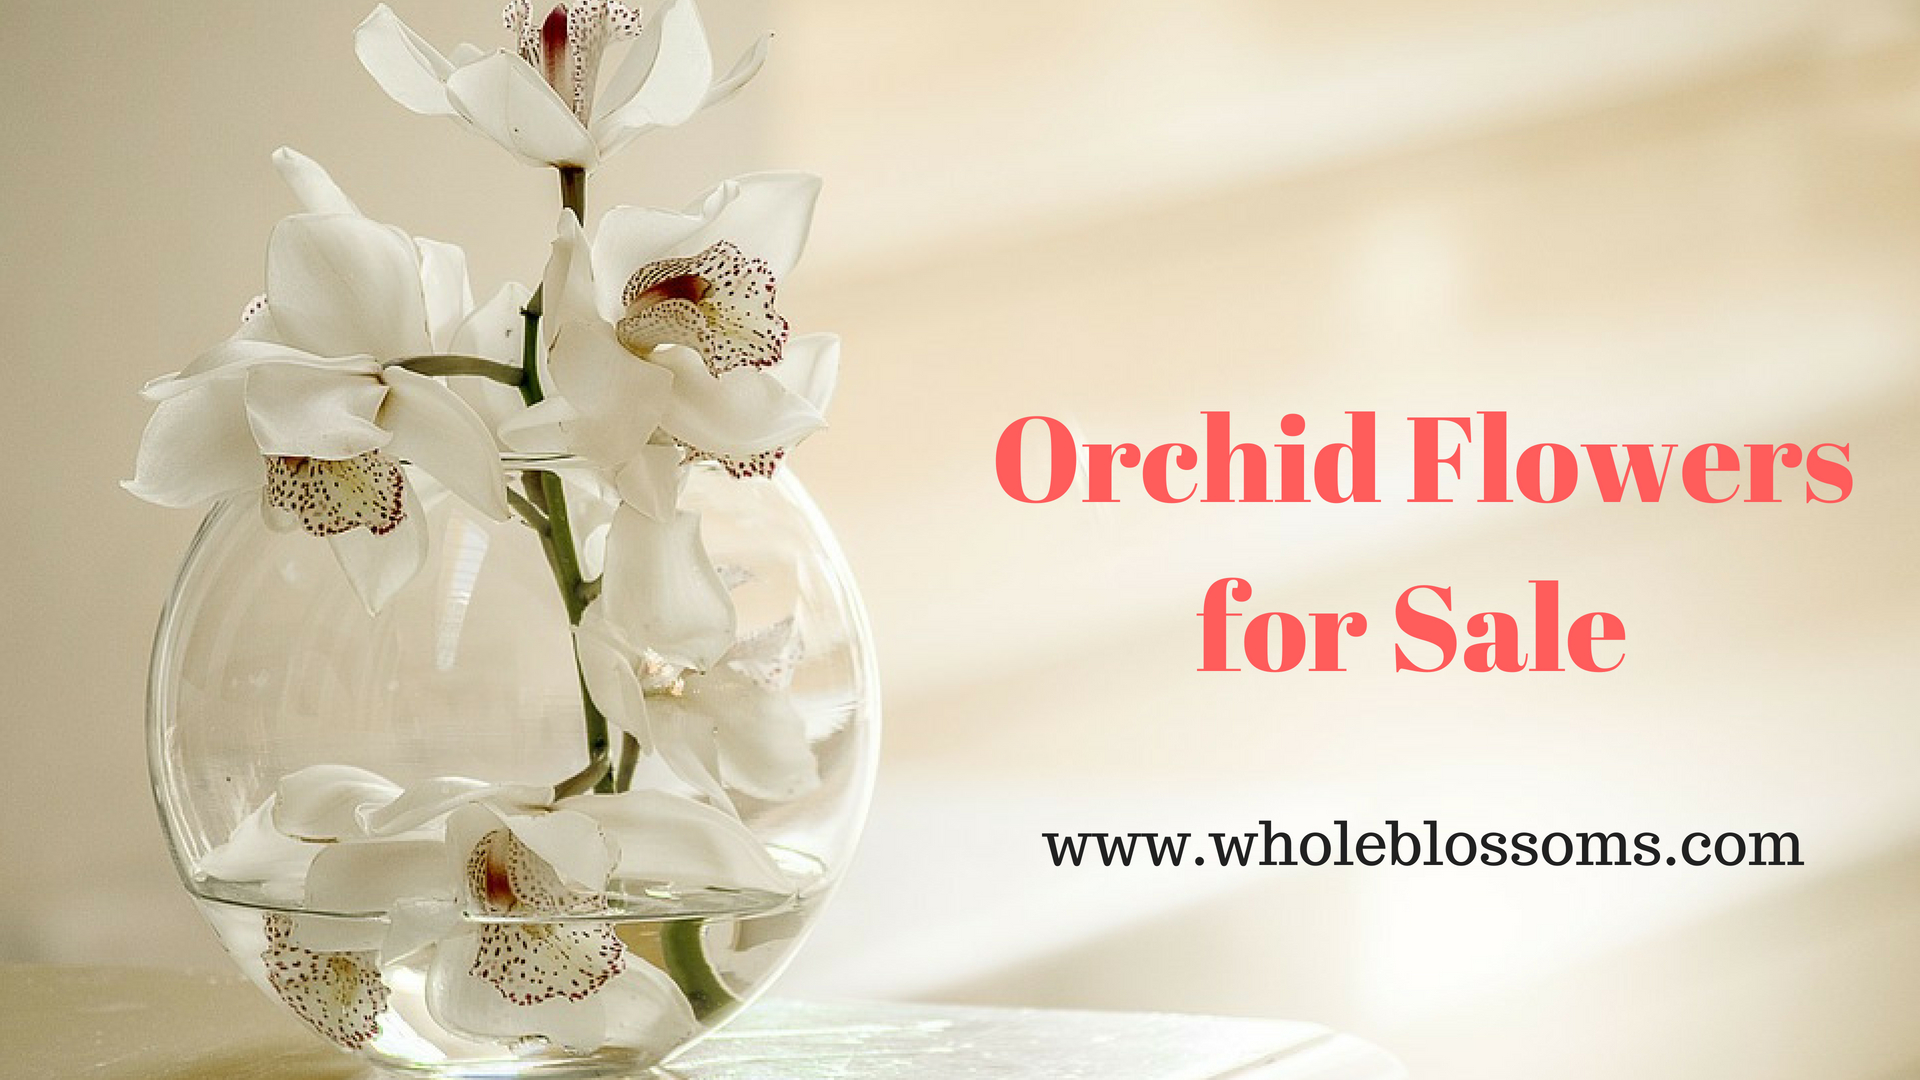 Purchase Special Orchid flowers for sale from Whole Blossoms